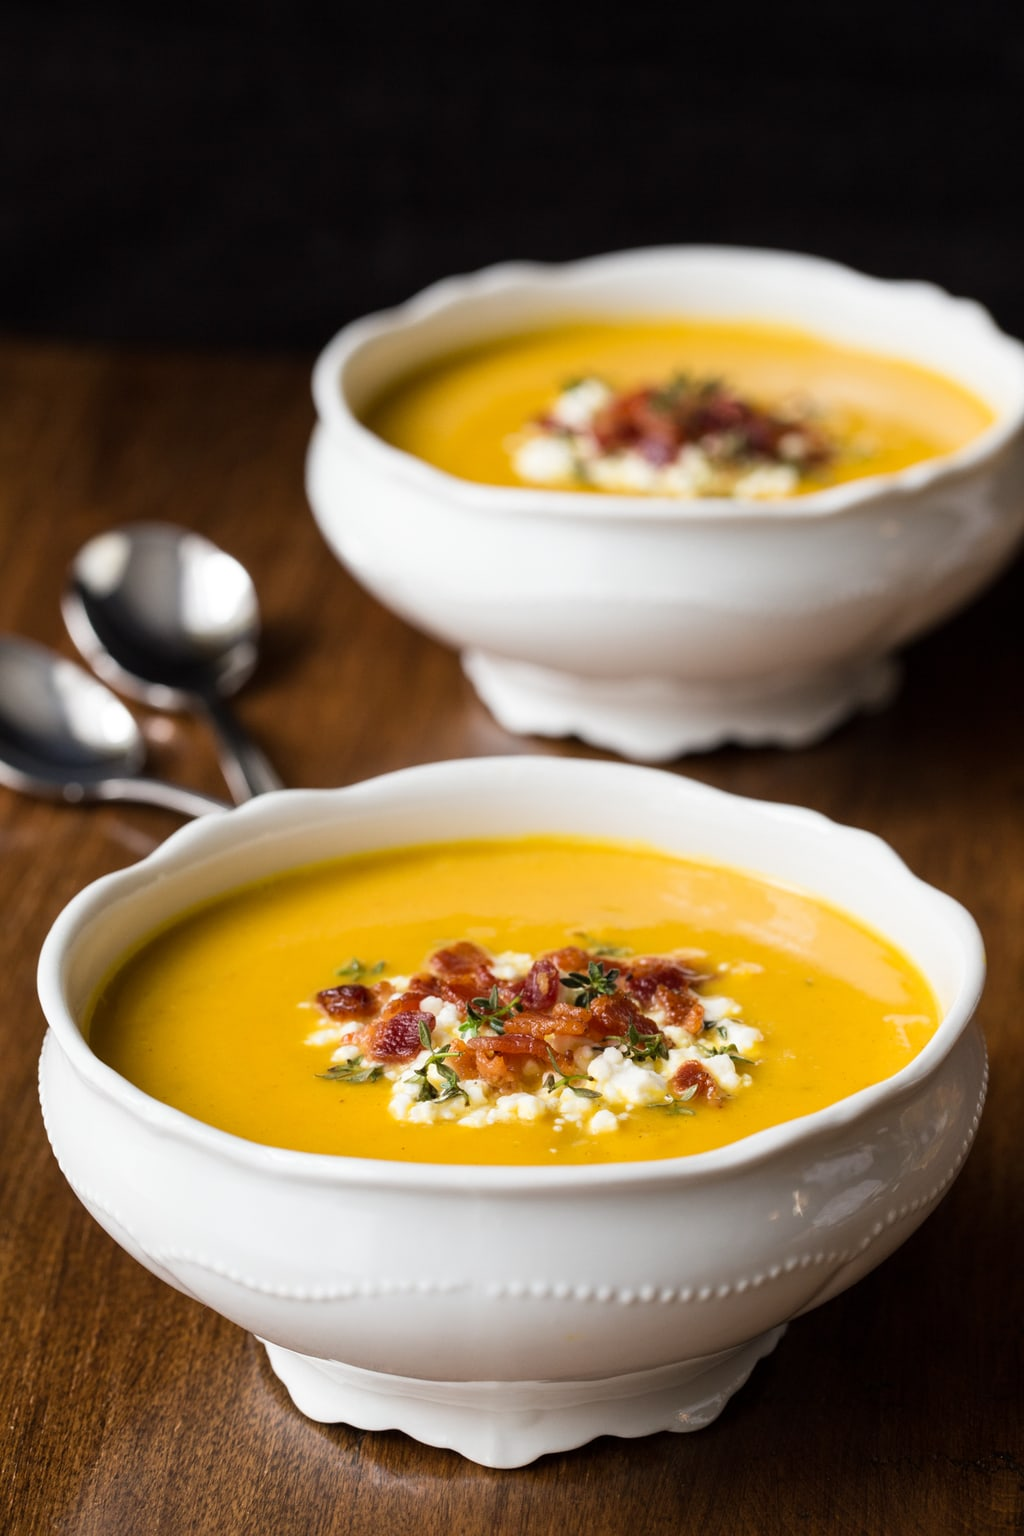 A photo of two white bowls of Butternut Squash and Bacon Soup, one of The Cafe Sucre Farine's Soup Recipes, on a wood table.